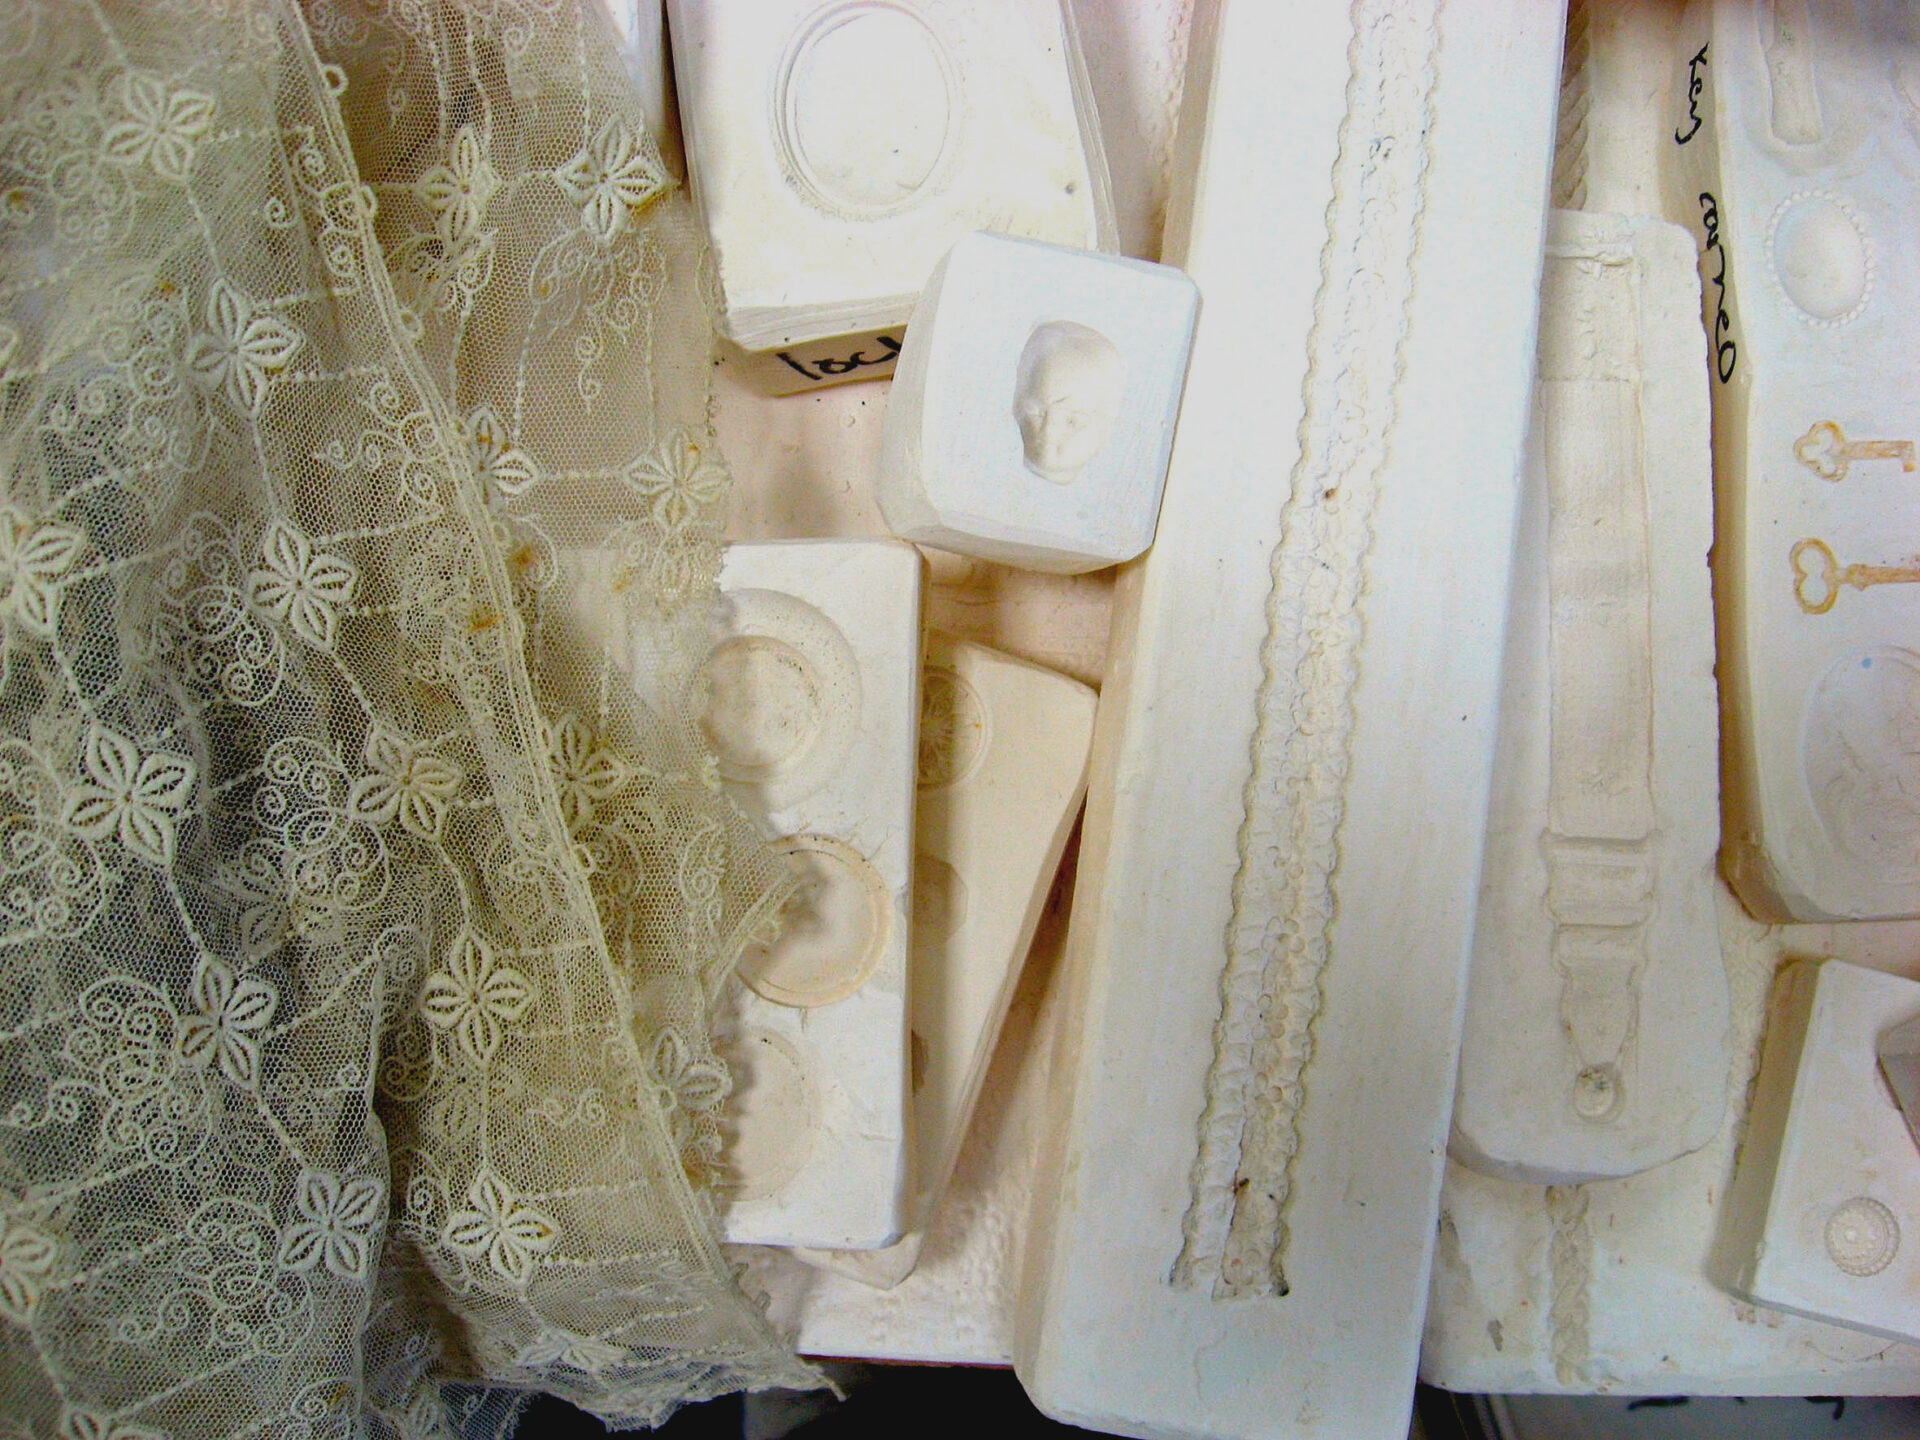 Image of moulds used for pressing ceramic clay into shapes